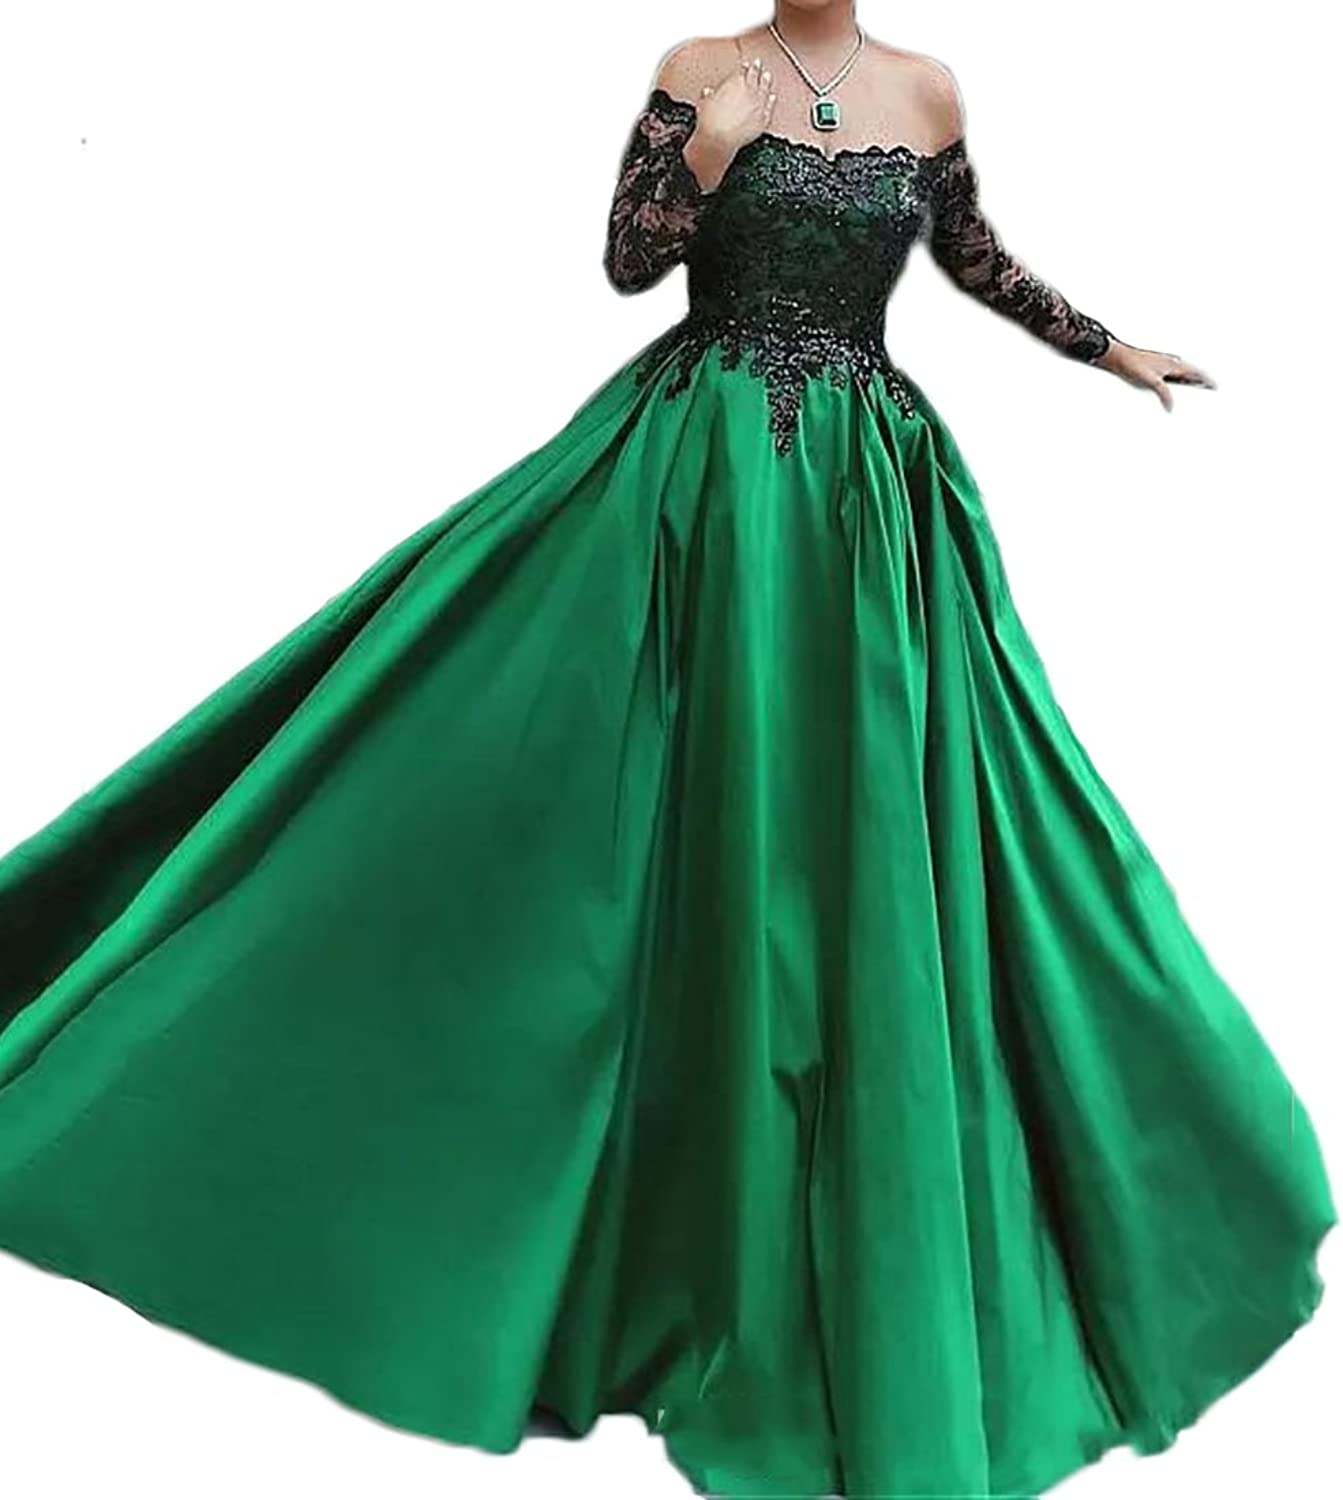 Alexzendra Women's Prom Dress Plus Size Long Evening Dress Formal With Sleeves Green